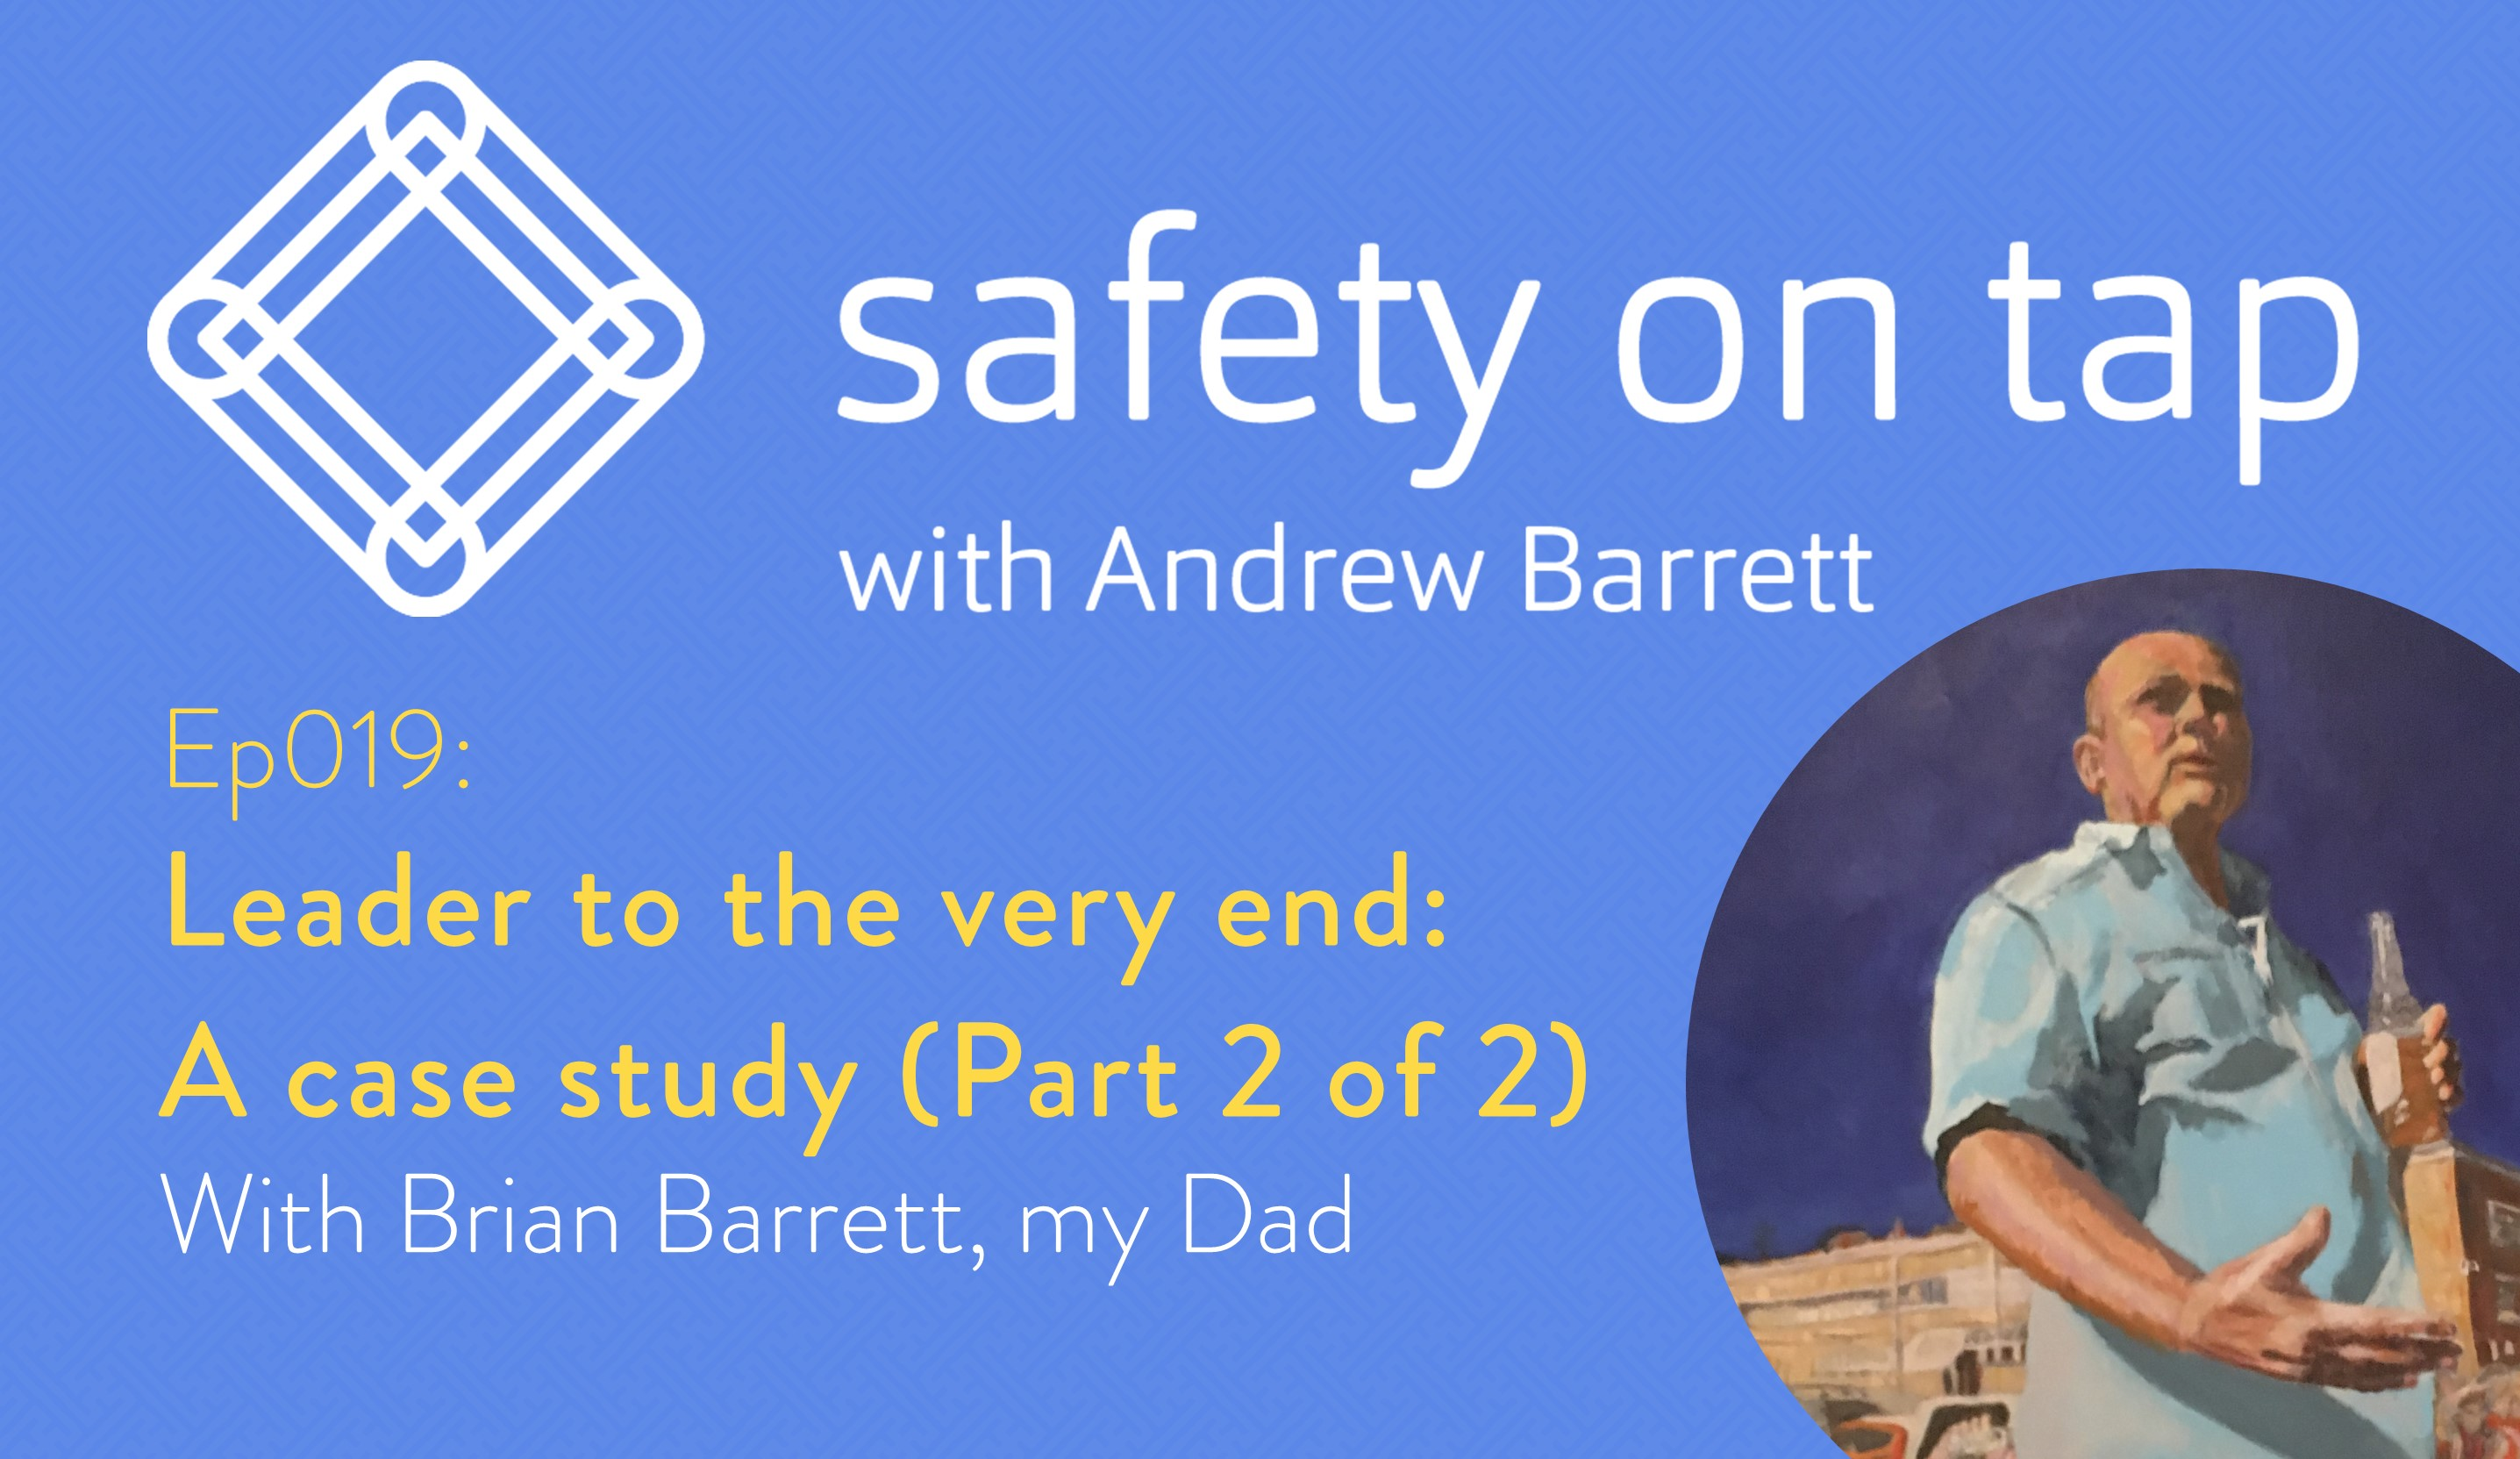 Ep019: Leader to the very end: A case study (Part 2 of 2) with Brian Barrett, my Dad